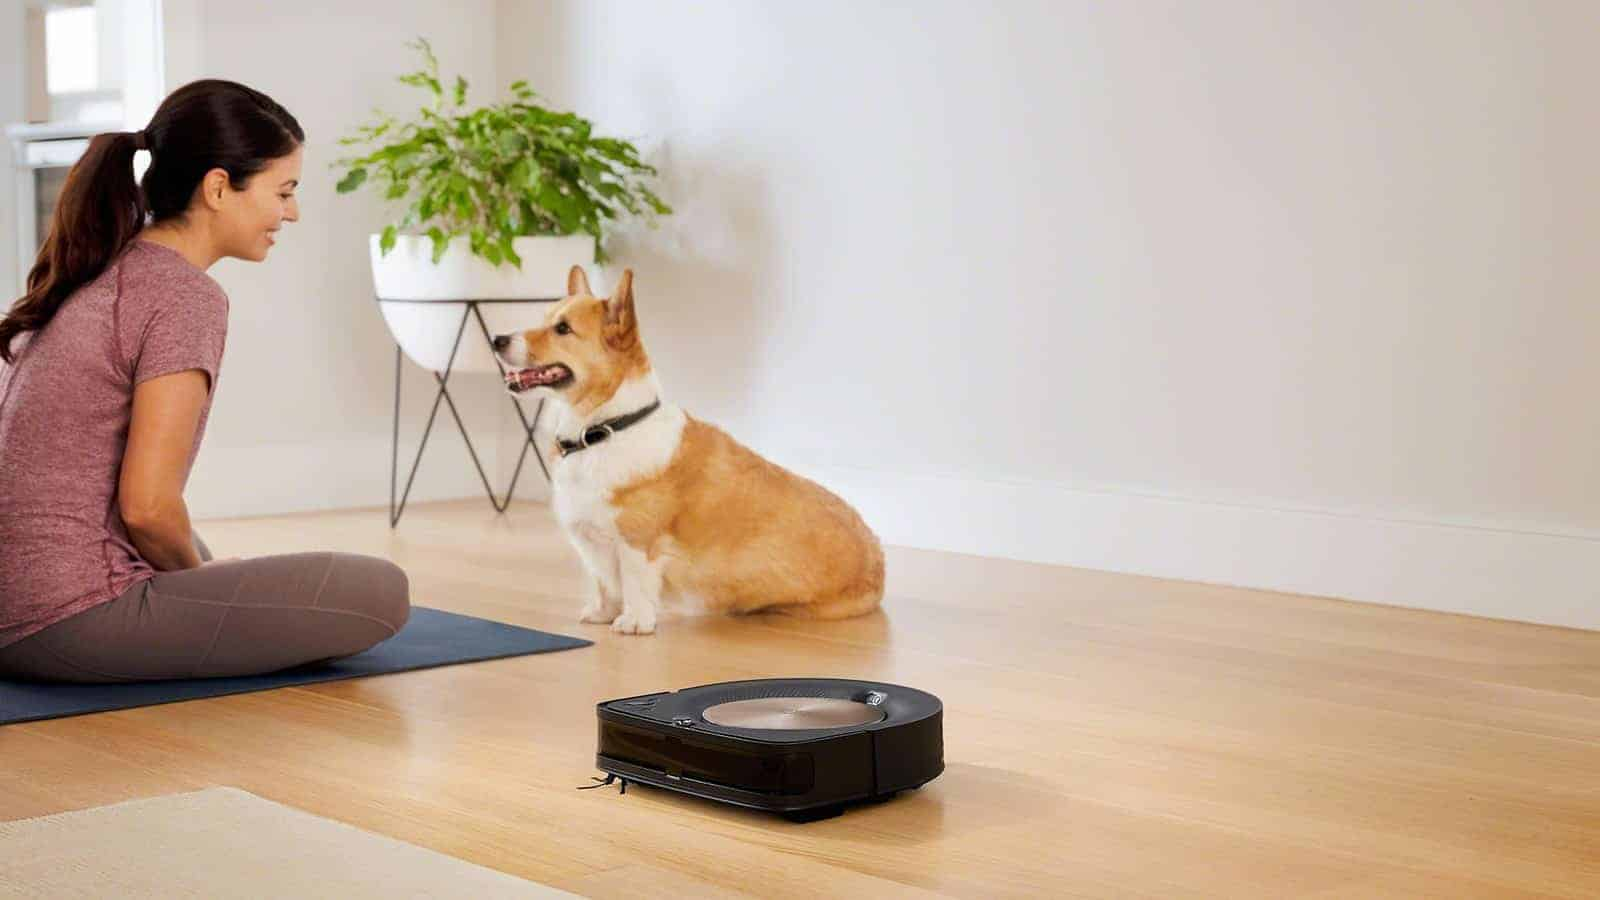 Woman talks to corgi while robotic vacuum cleans the floor.